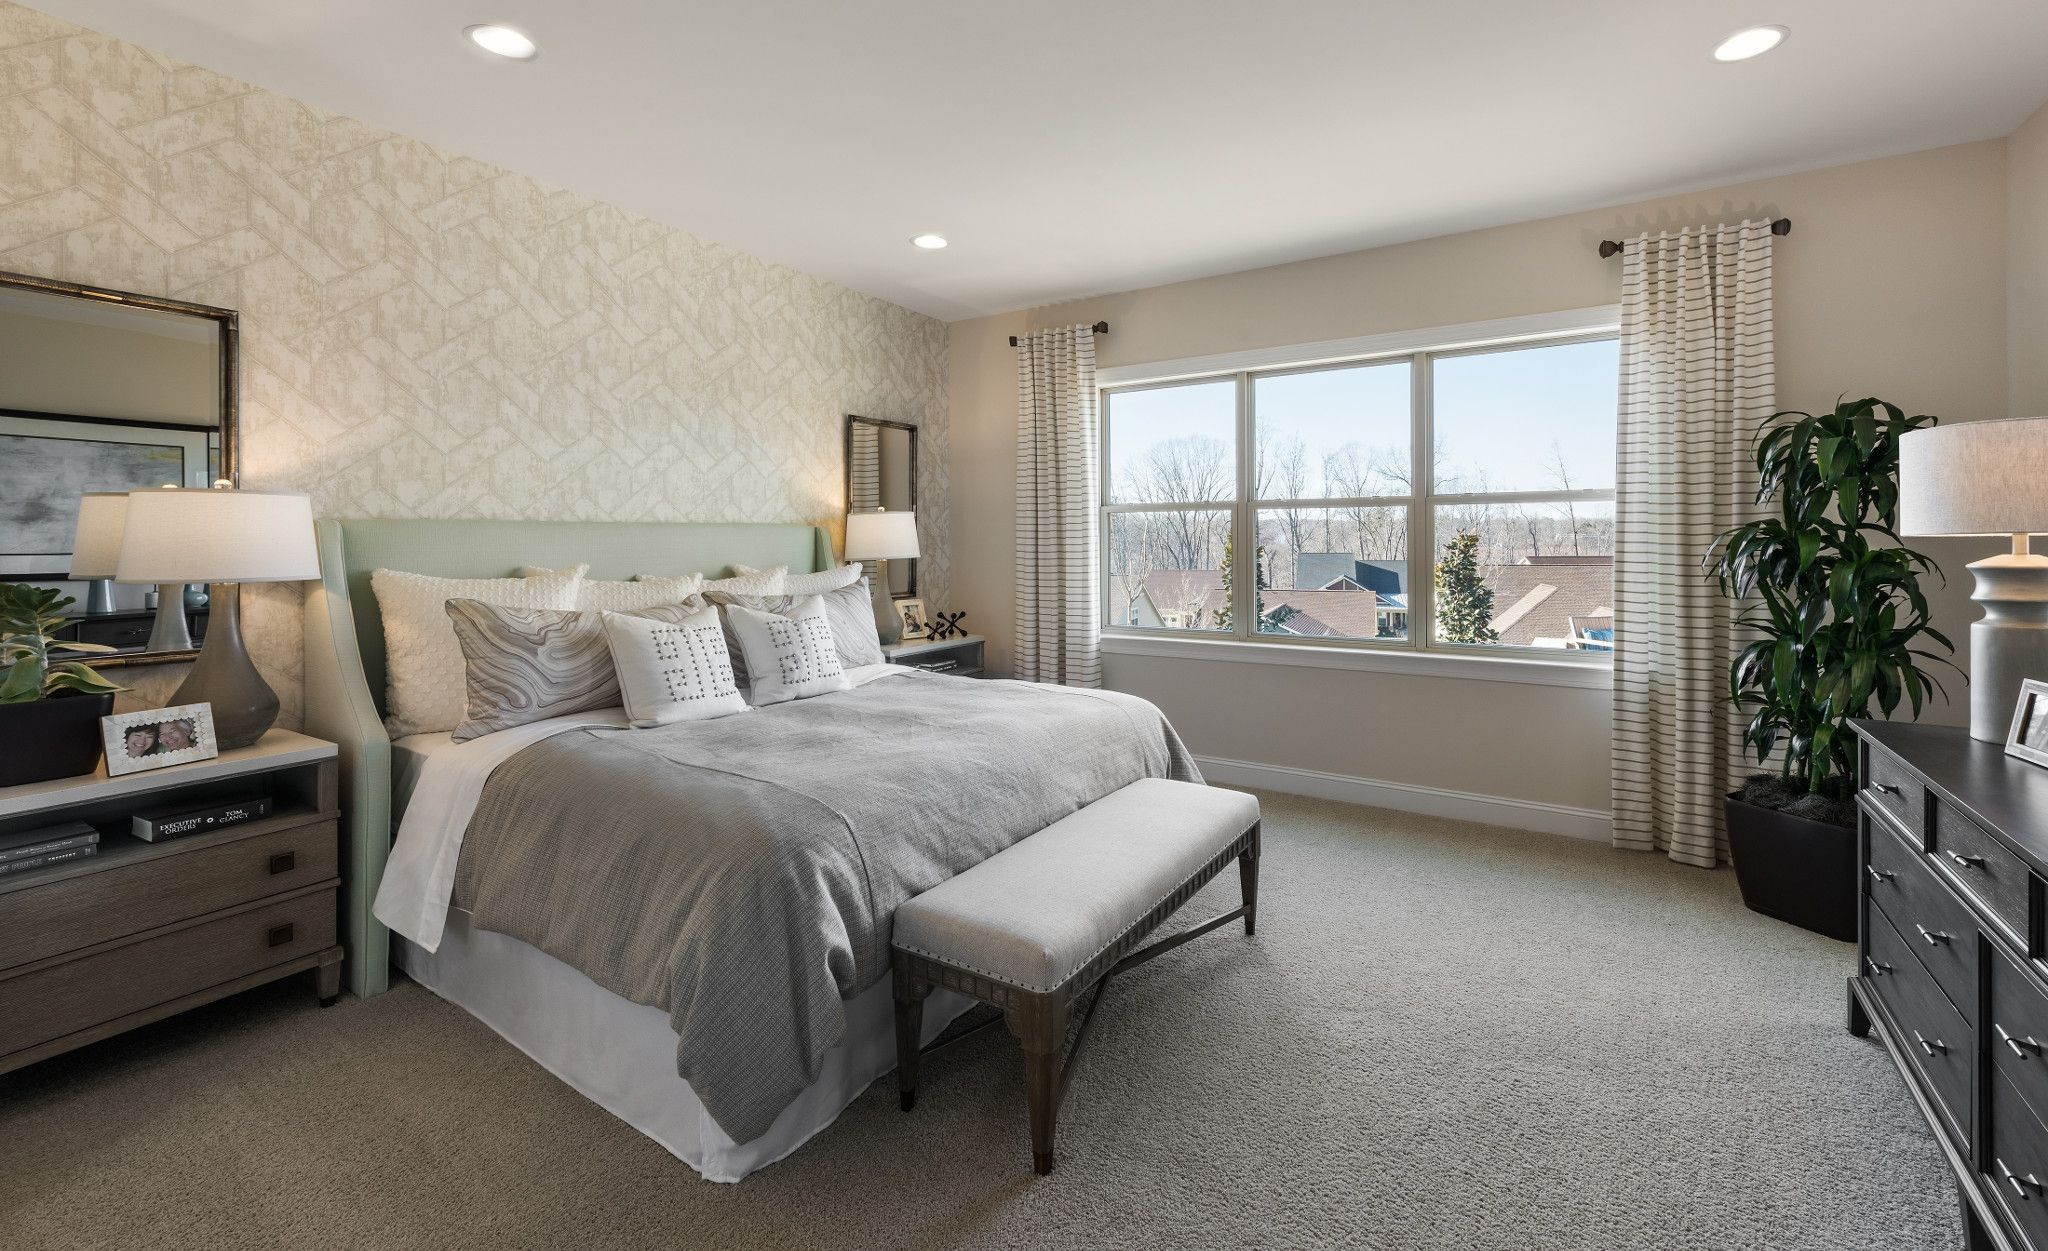 Bedroom featured in the Proclaim By Shea Homes - Trilogy in Charlotte, NC